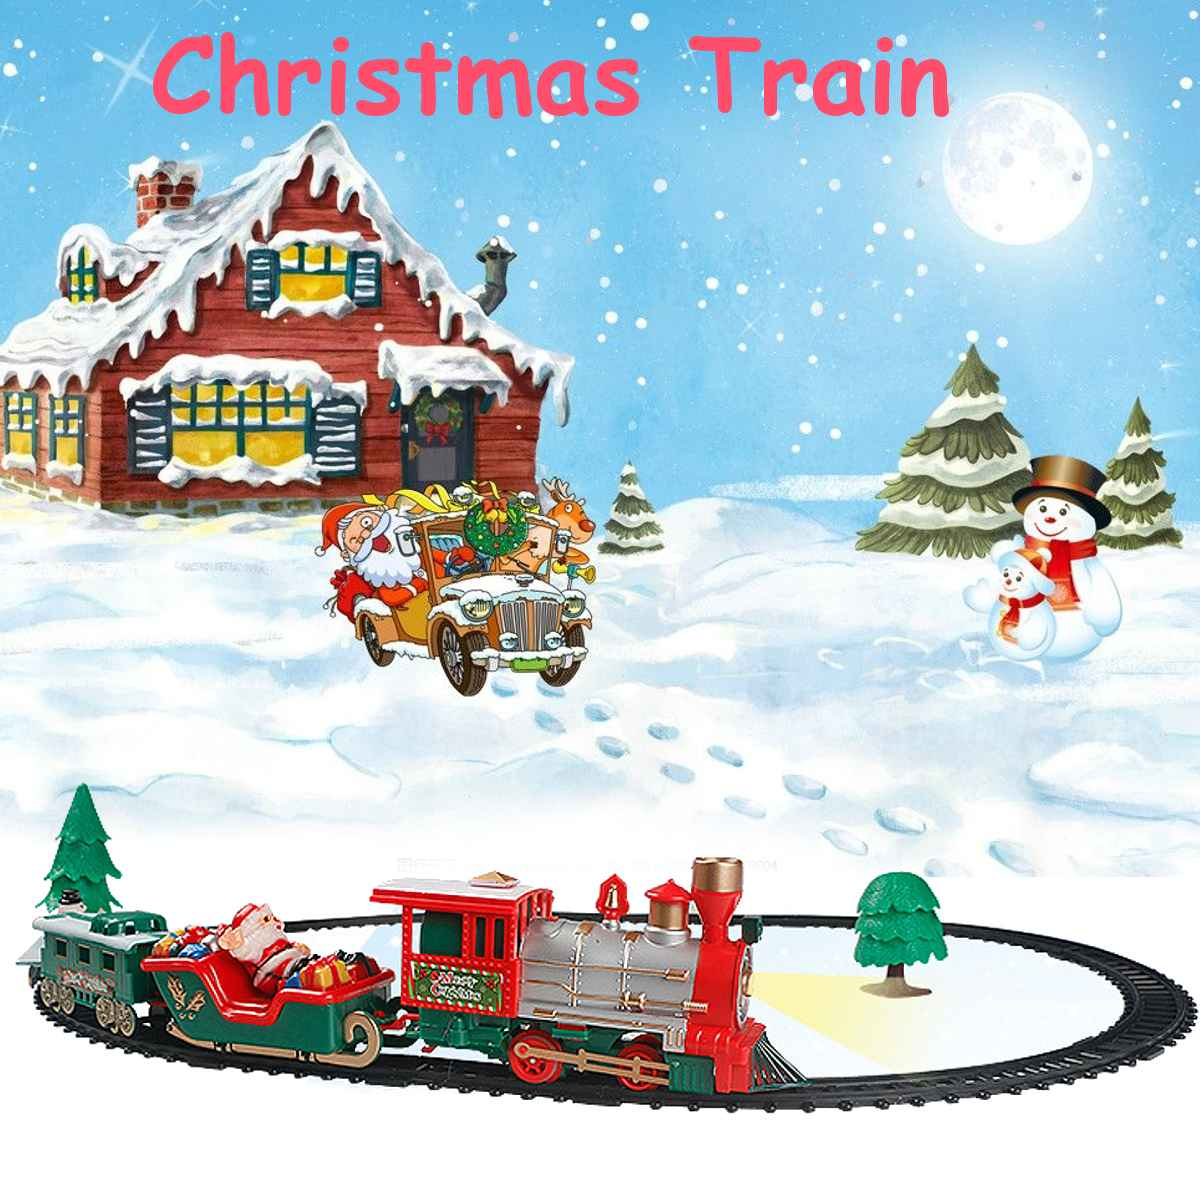 Children Track Small Train Toy Electric Christmas Train Simulation Classic Power RC Track Train Set Holiday Gift